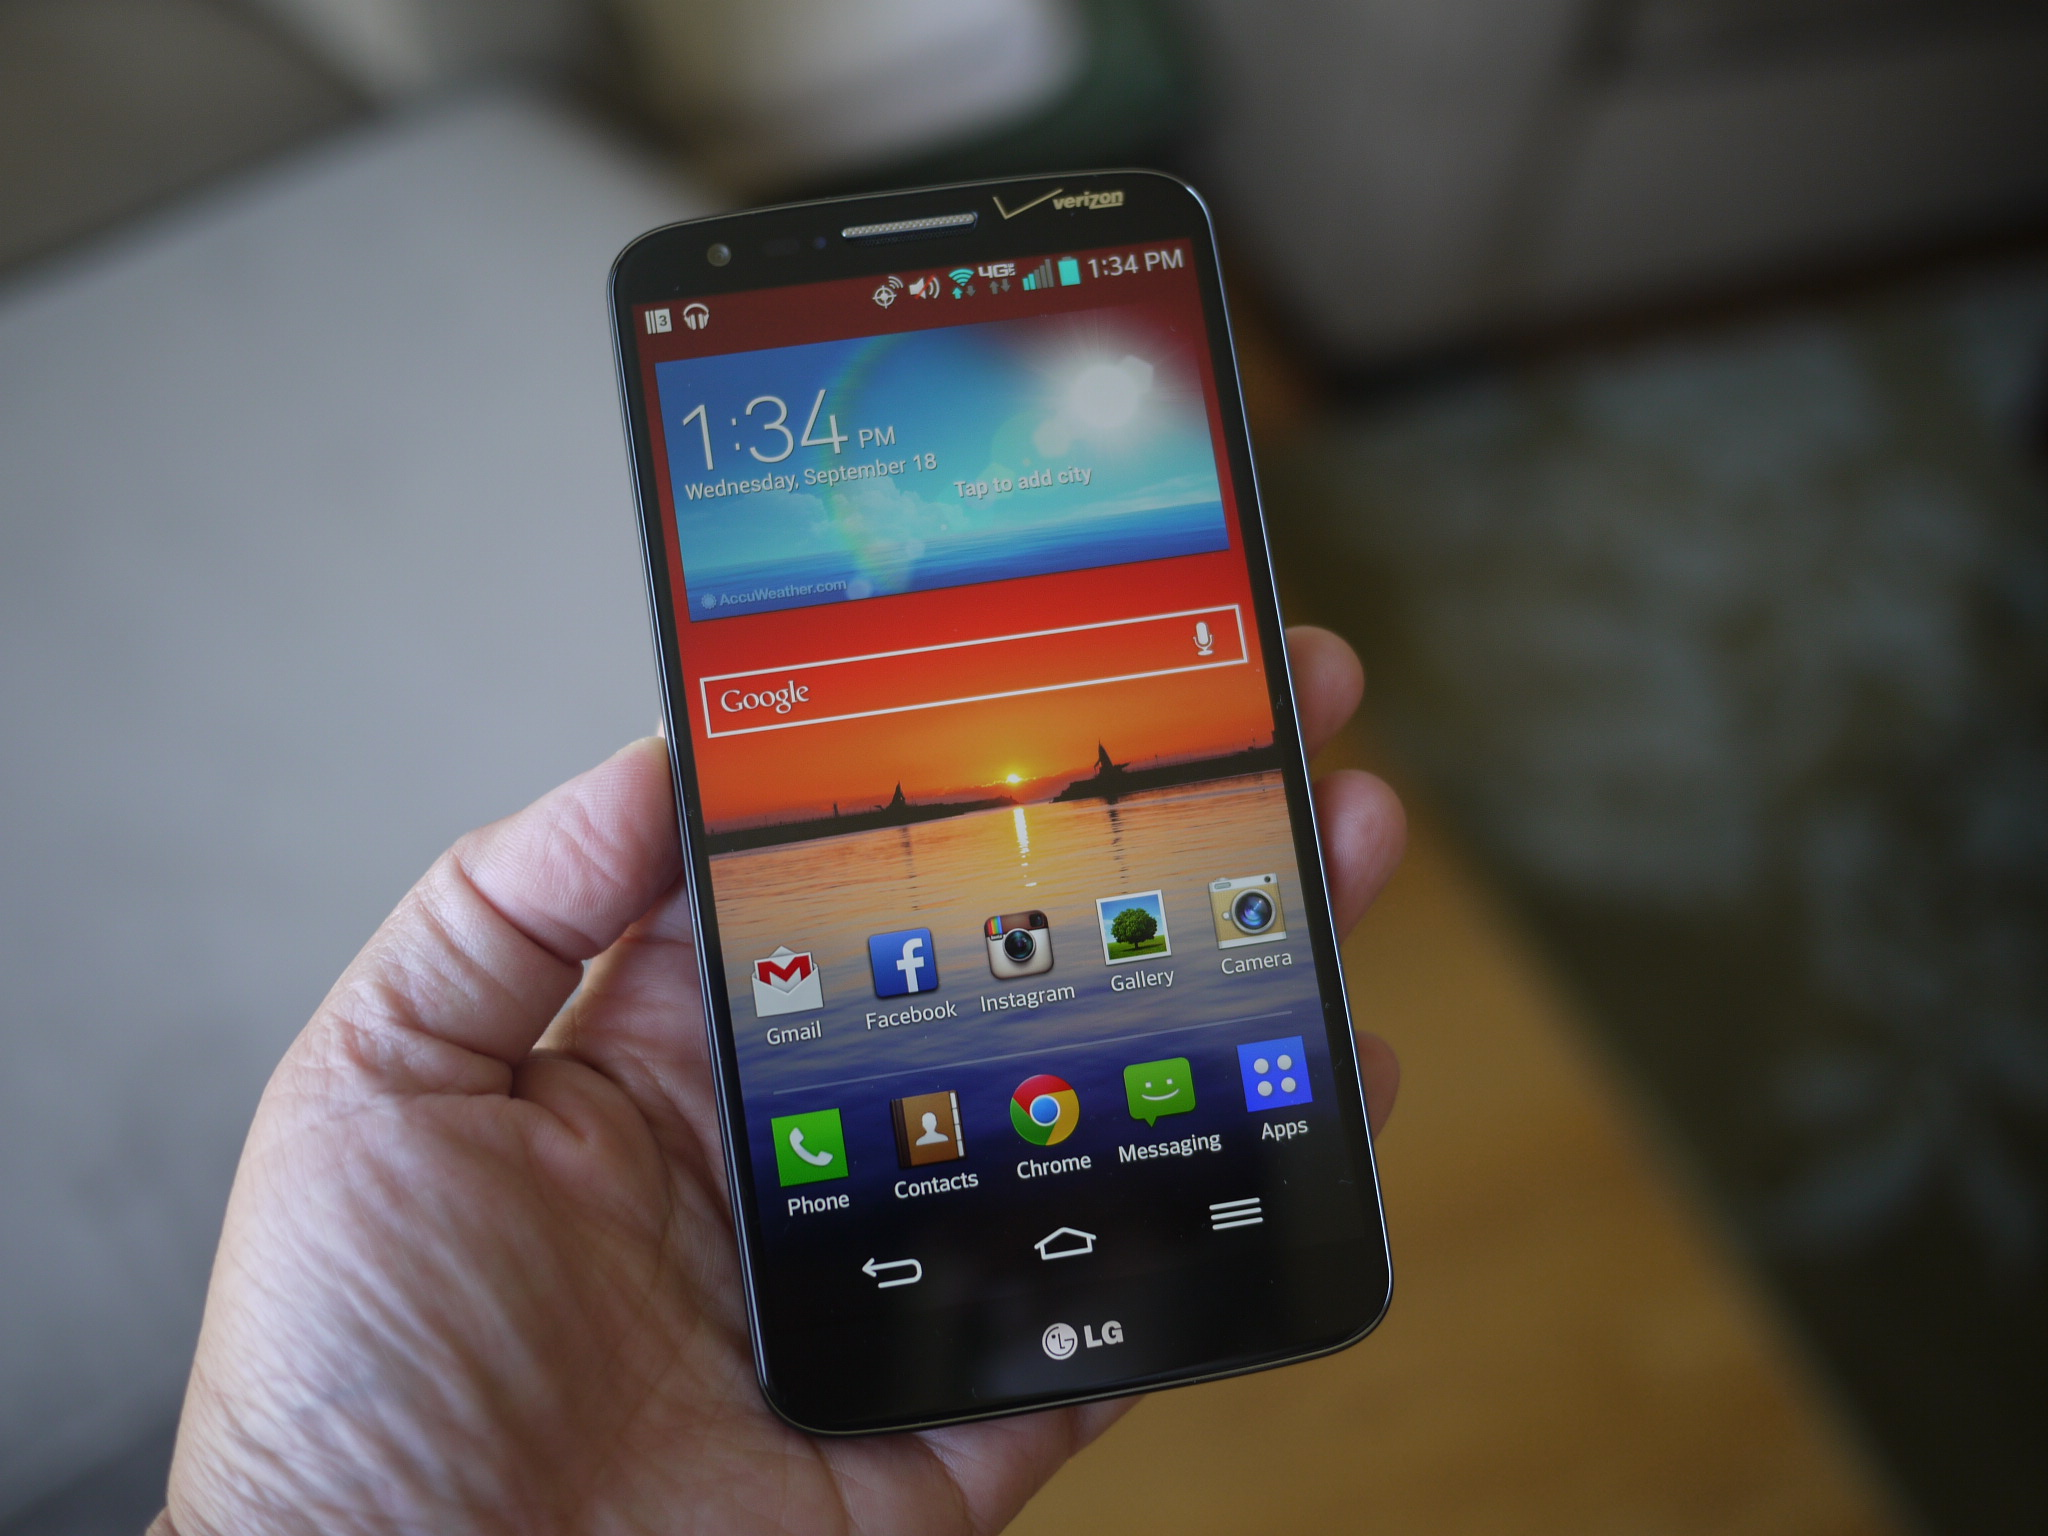 LG G2: A Solid Performer Held Back by Design, Software Flaws